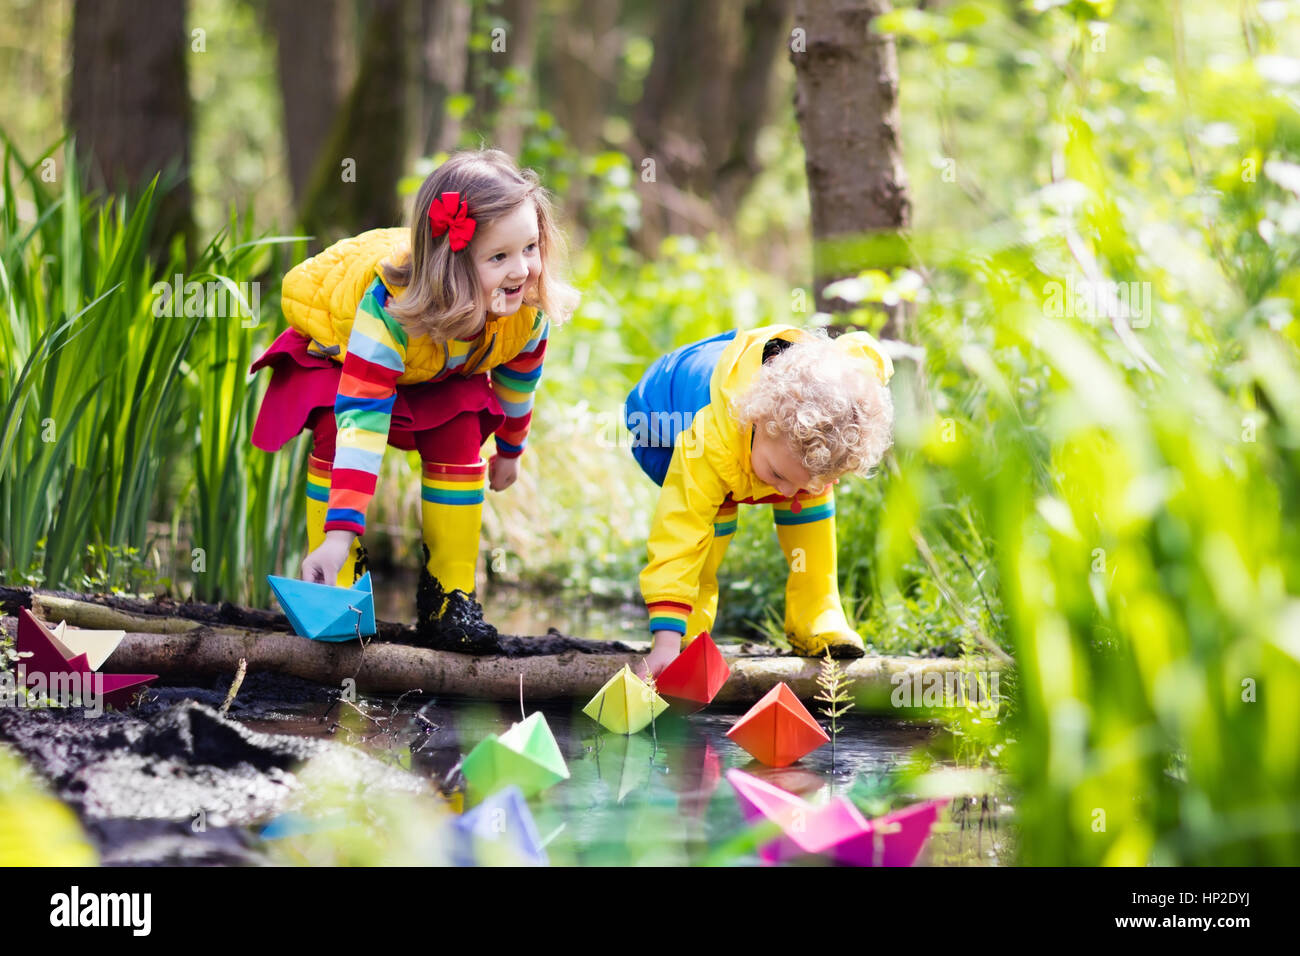 Baby Toddler Rain Boots Children Play With Colorful Paper Boats In A Small River